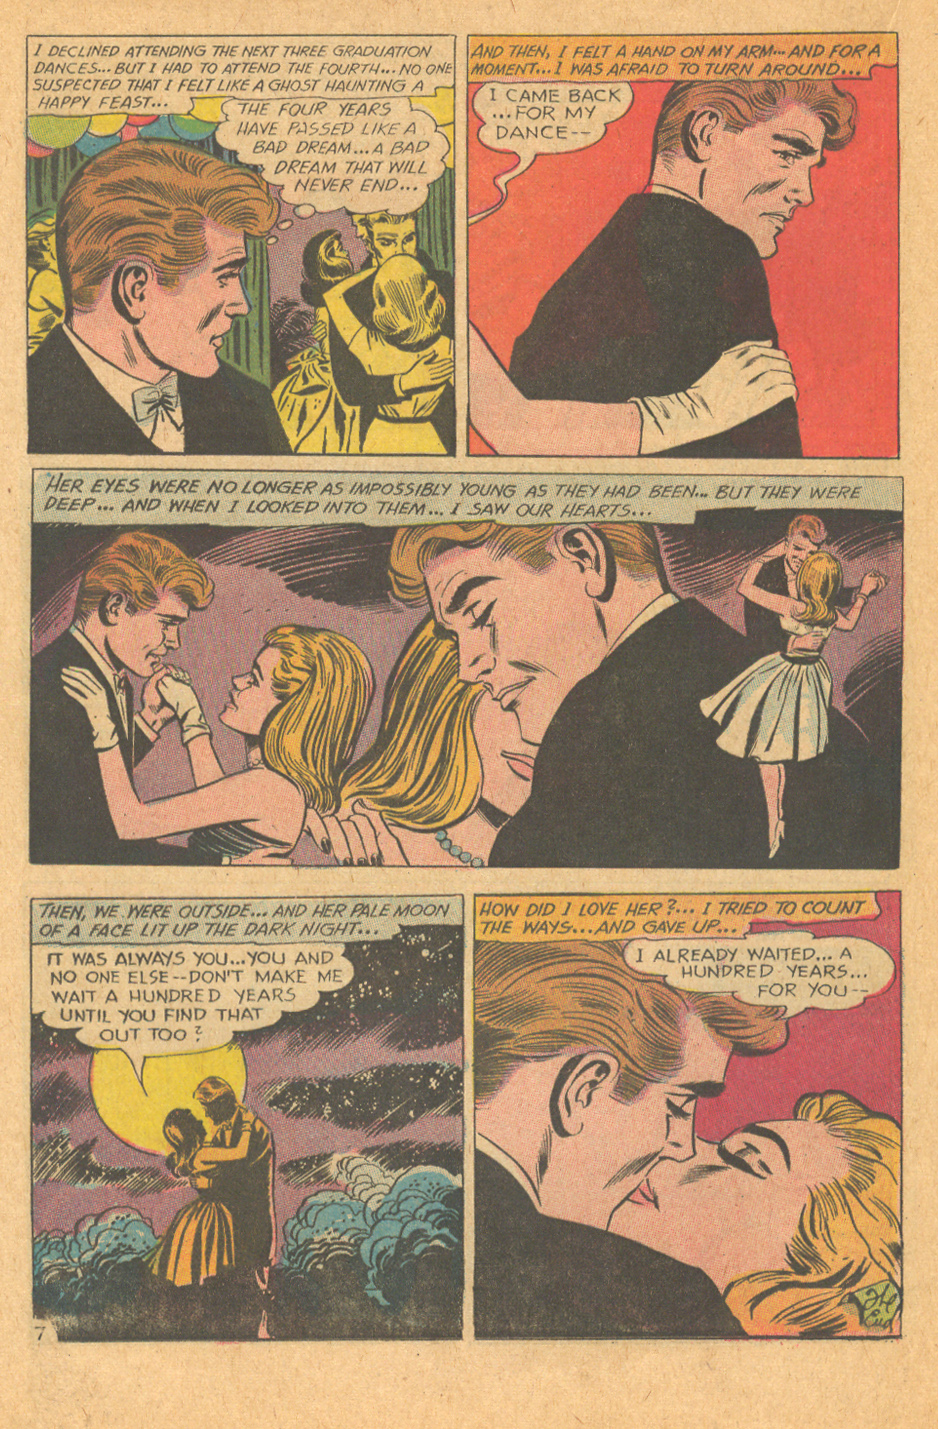 Guy's point of view romance story comic book DC